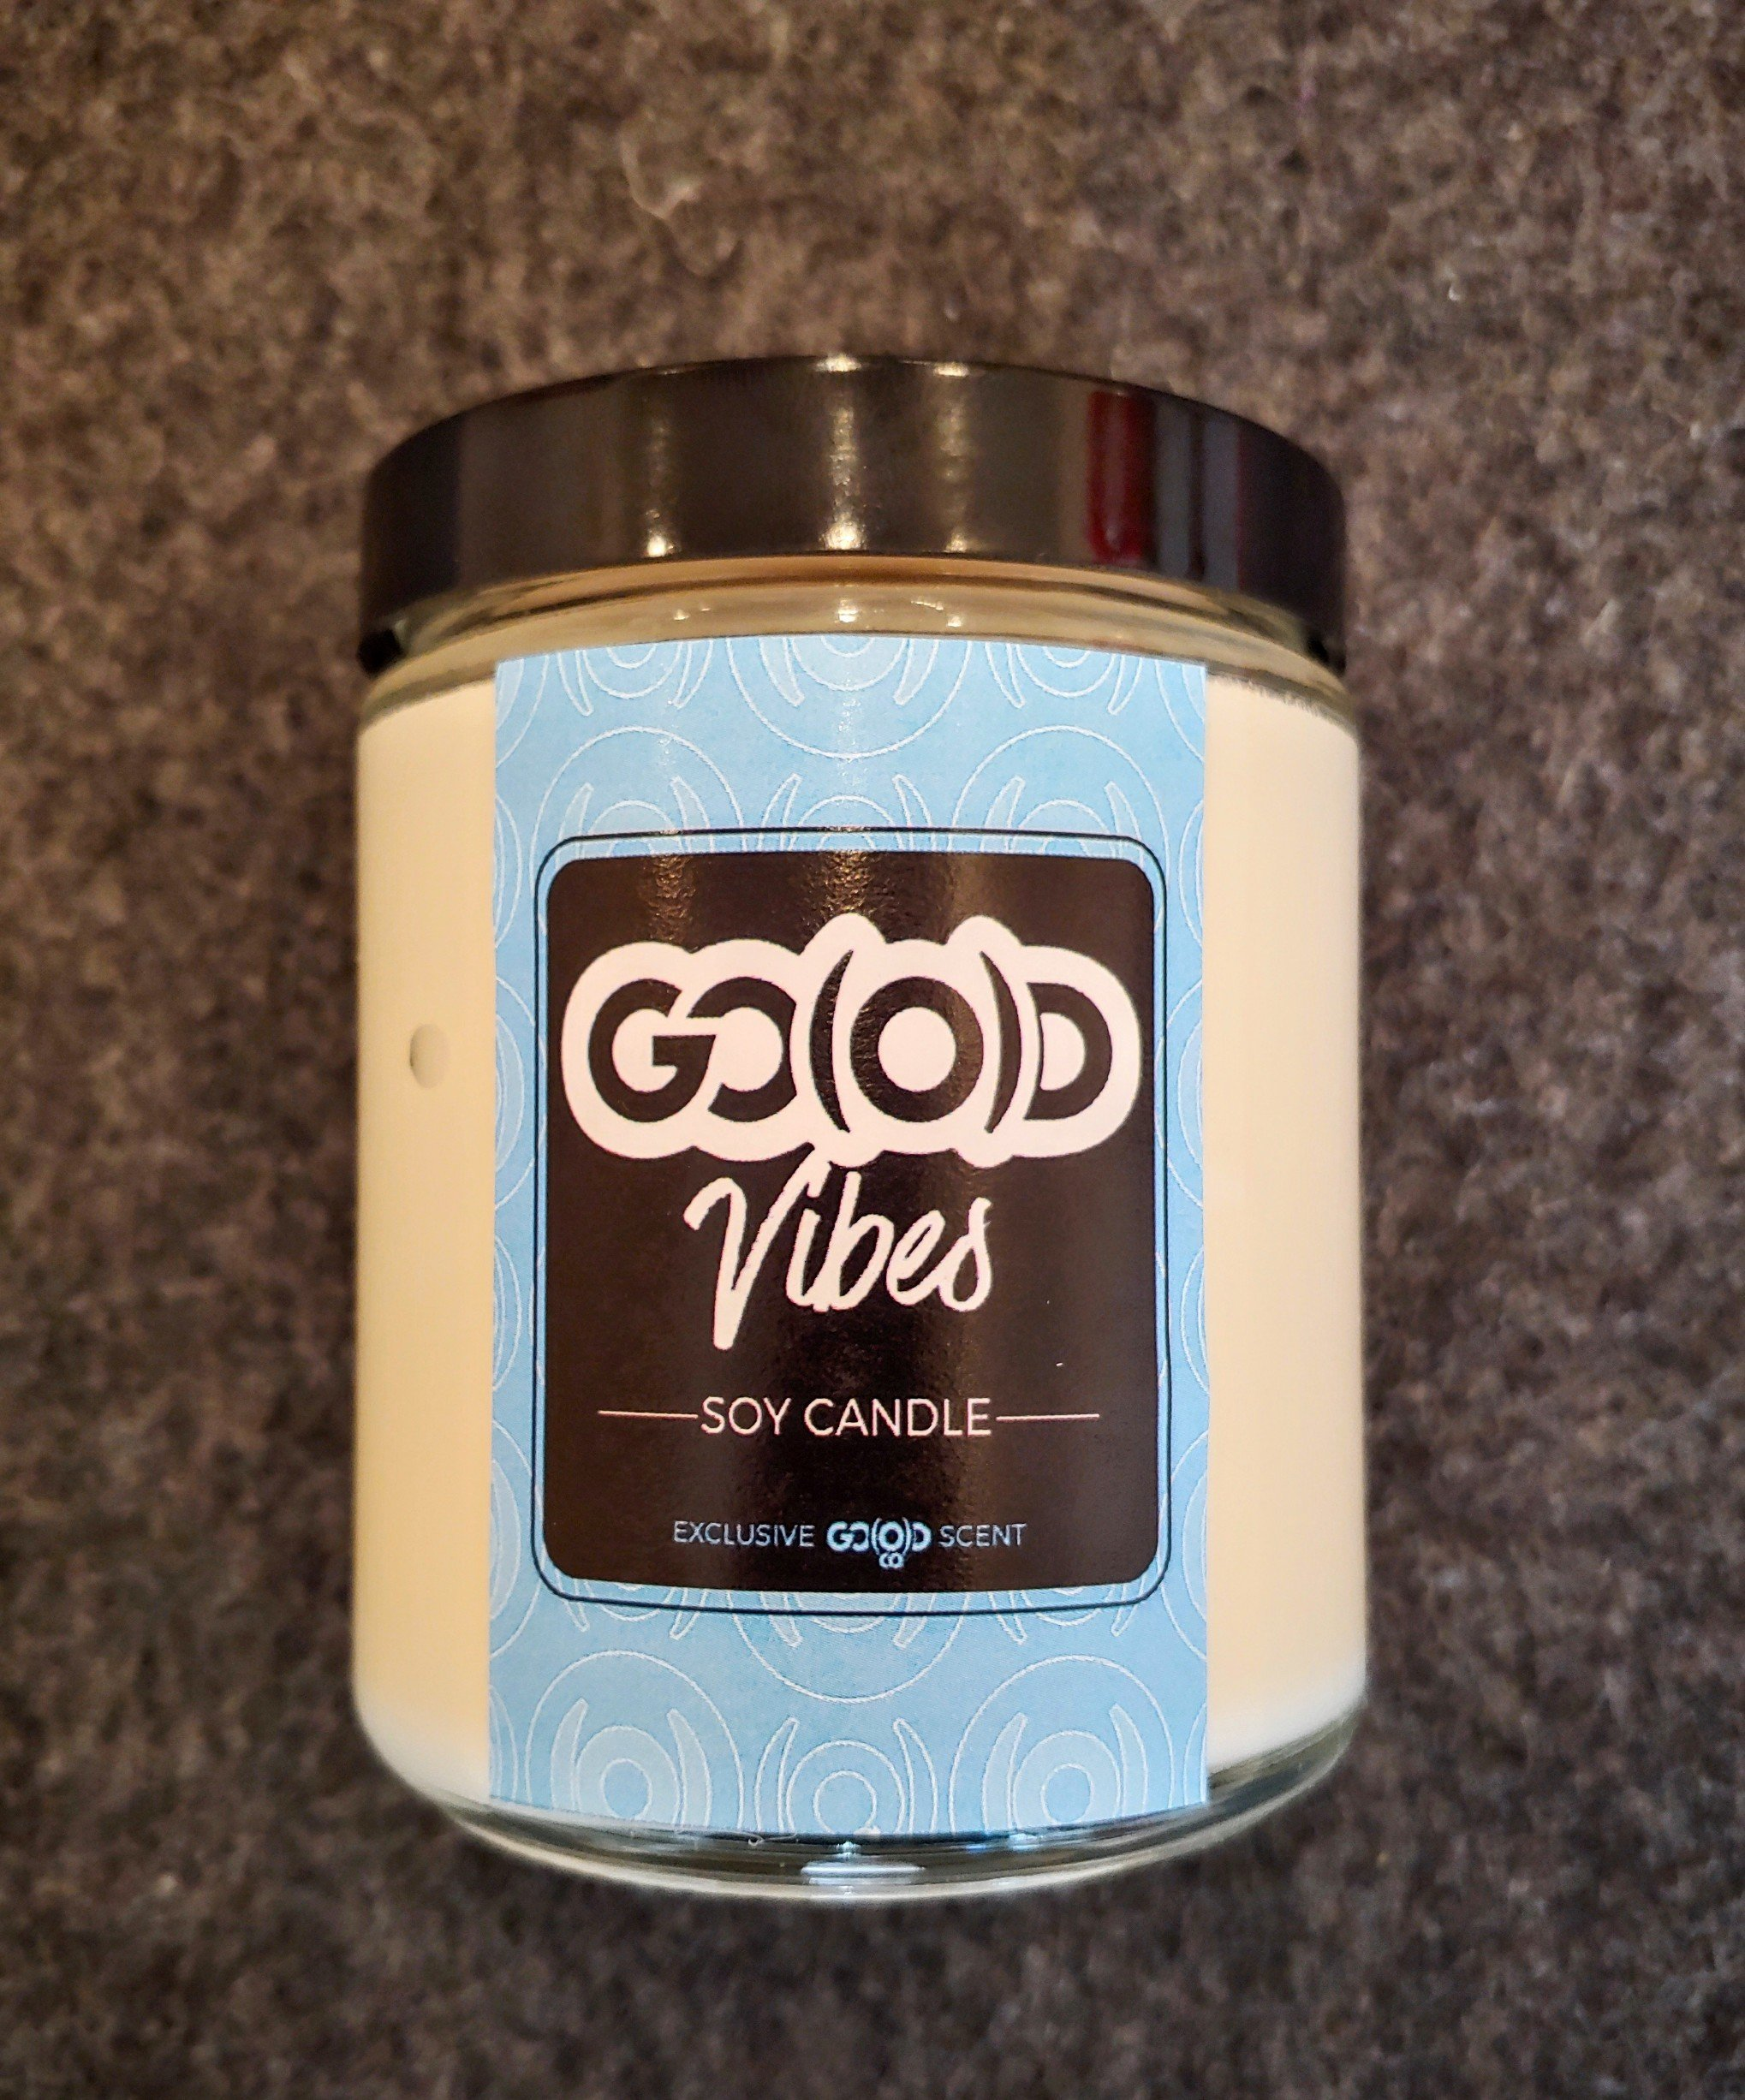 *SOLD OUT* GO(O)D Vibes-8 ounce soy candle 00163